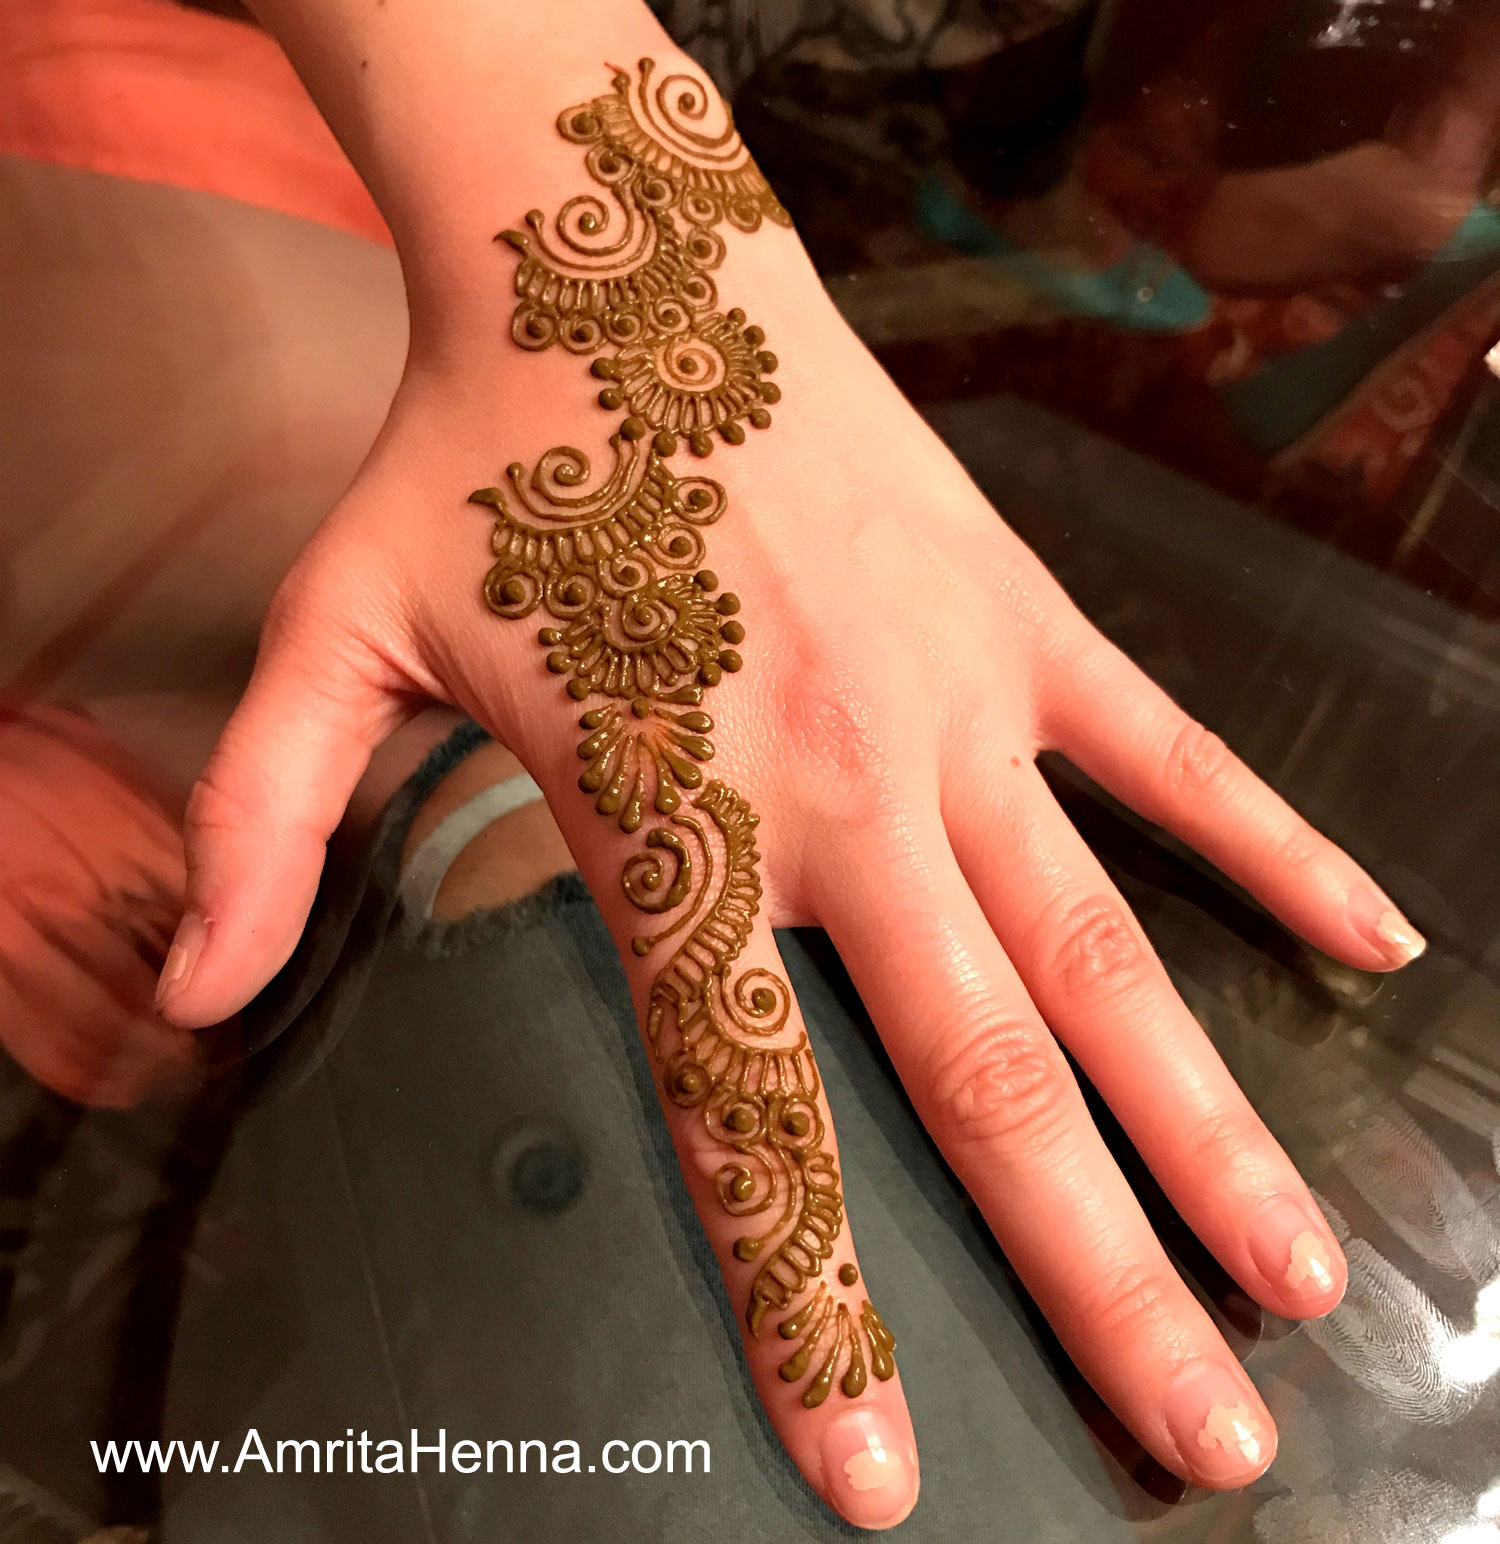 28 Quick And Easy Tattoo Designs Henna Designs Search